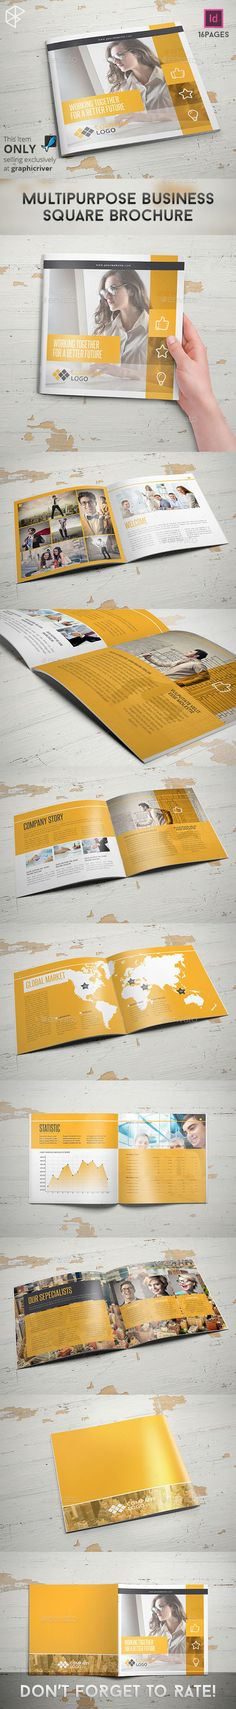 Multipurpose Business Square Brochure — InDesign INDD #business #indesign template • Available here → https://graphicriver.net/item/multipurpose-business-square-brochure/11376630?ref=pxcr